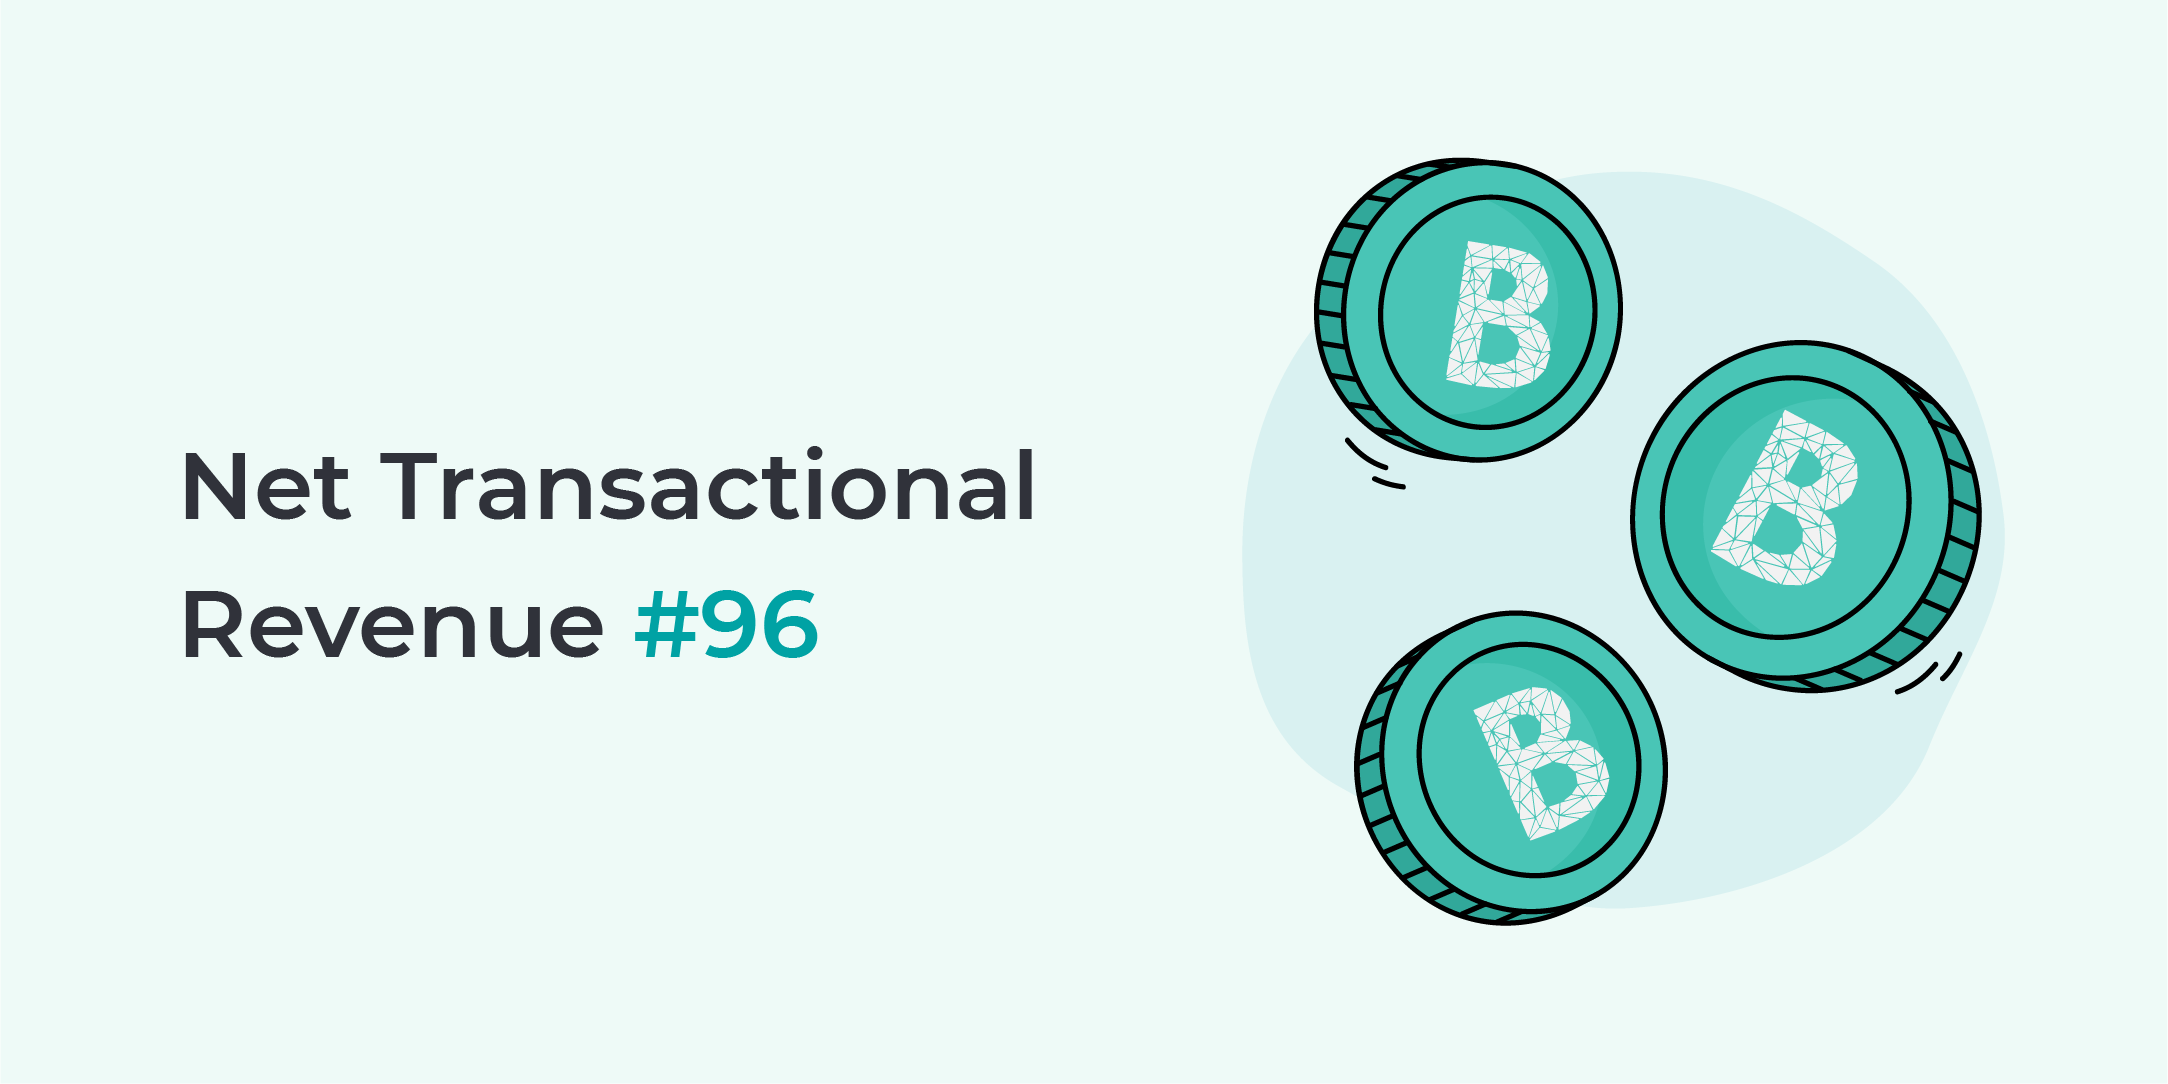 Bankera's Net Transactional Revenue No. 96